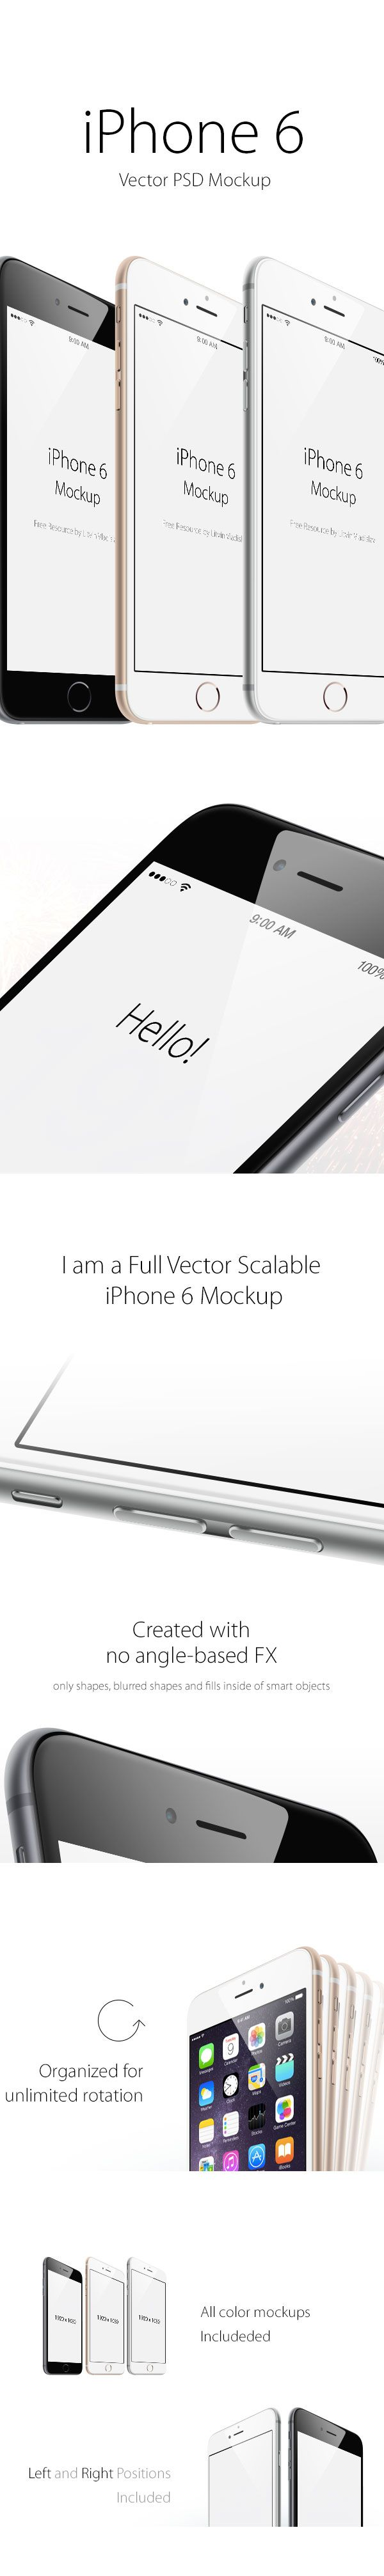 Very quickly!, This is a free PSD Set of iPhone 6 Mockup from angled view. iPhone 6 Mockup Package was designed by Vlad Litvin